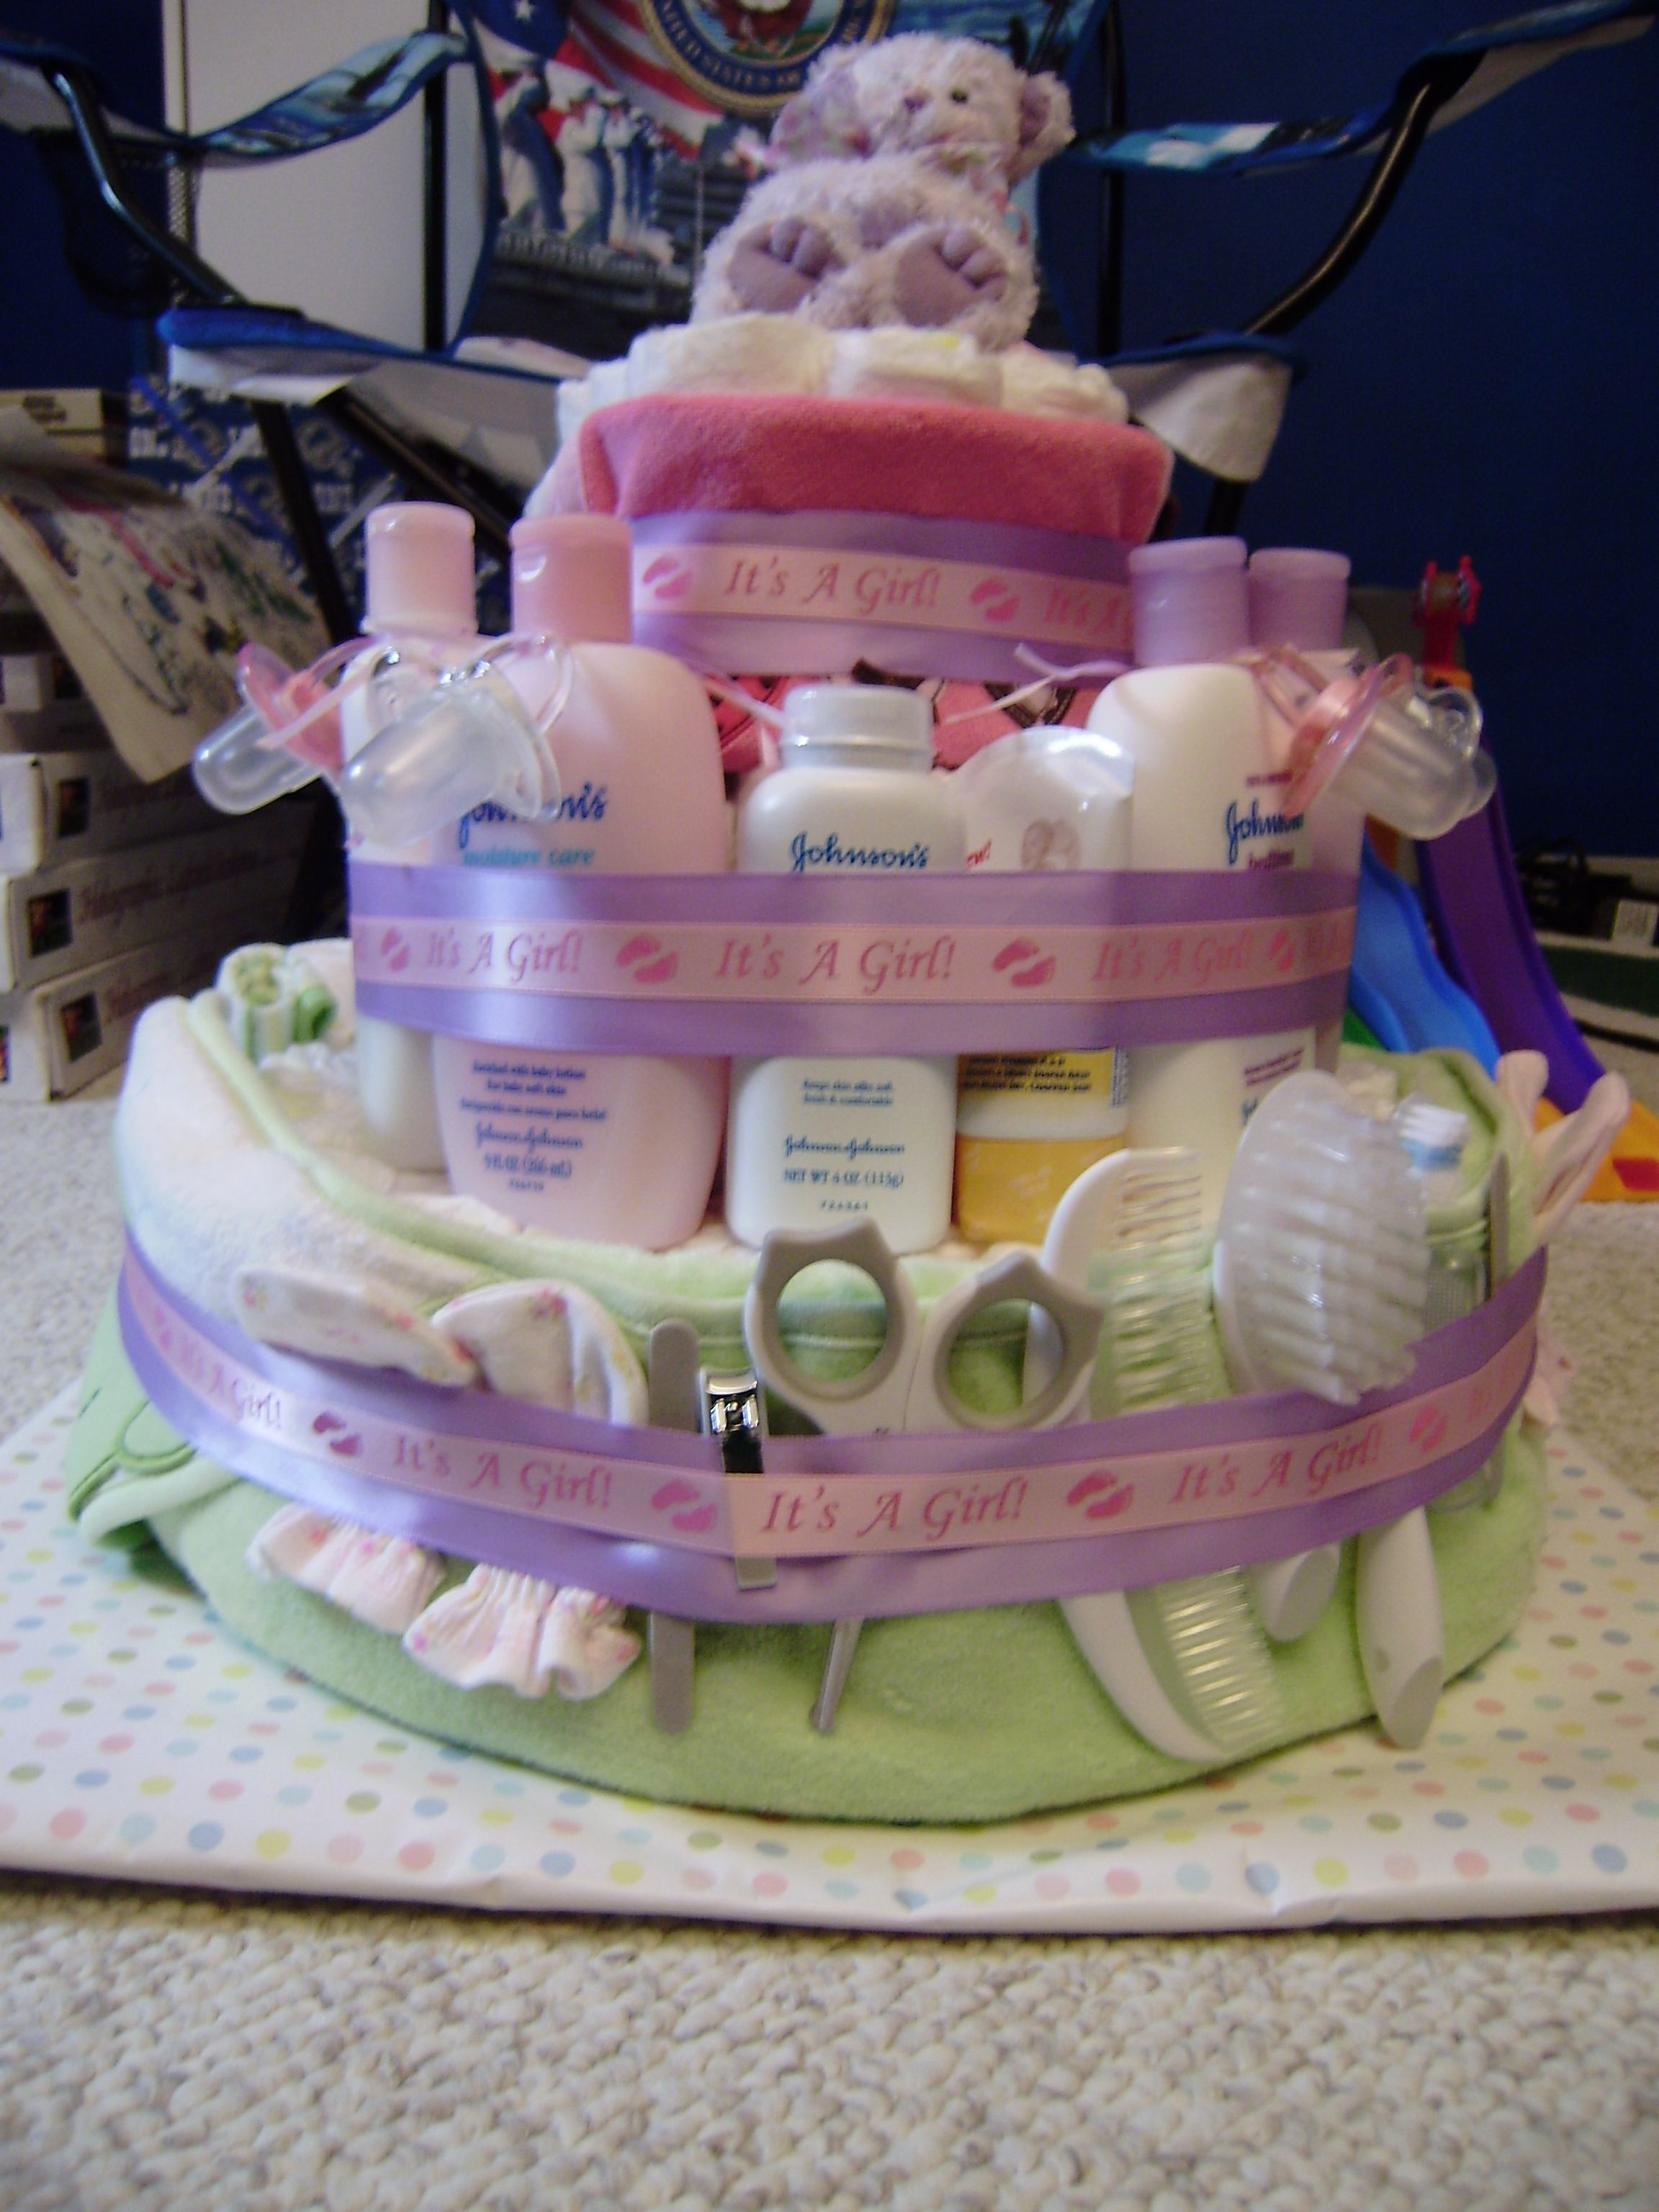 Baby Shower Arts And Crafts Part - 24: 28 Baby Shower Arts And Crafts Jungle Theme Baby Shower Baby Shower Arts  And Crafts How